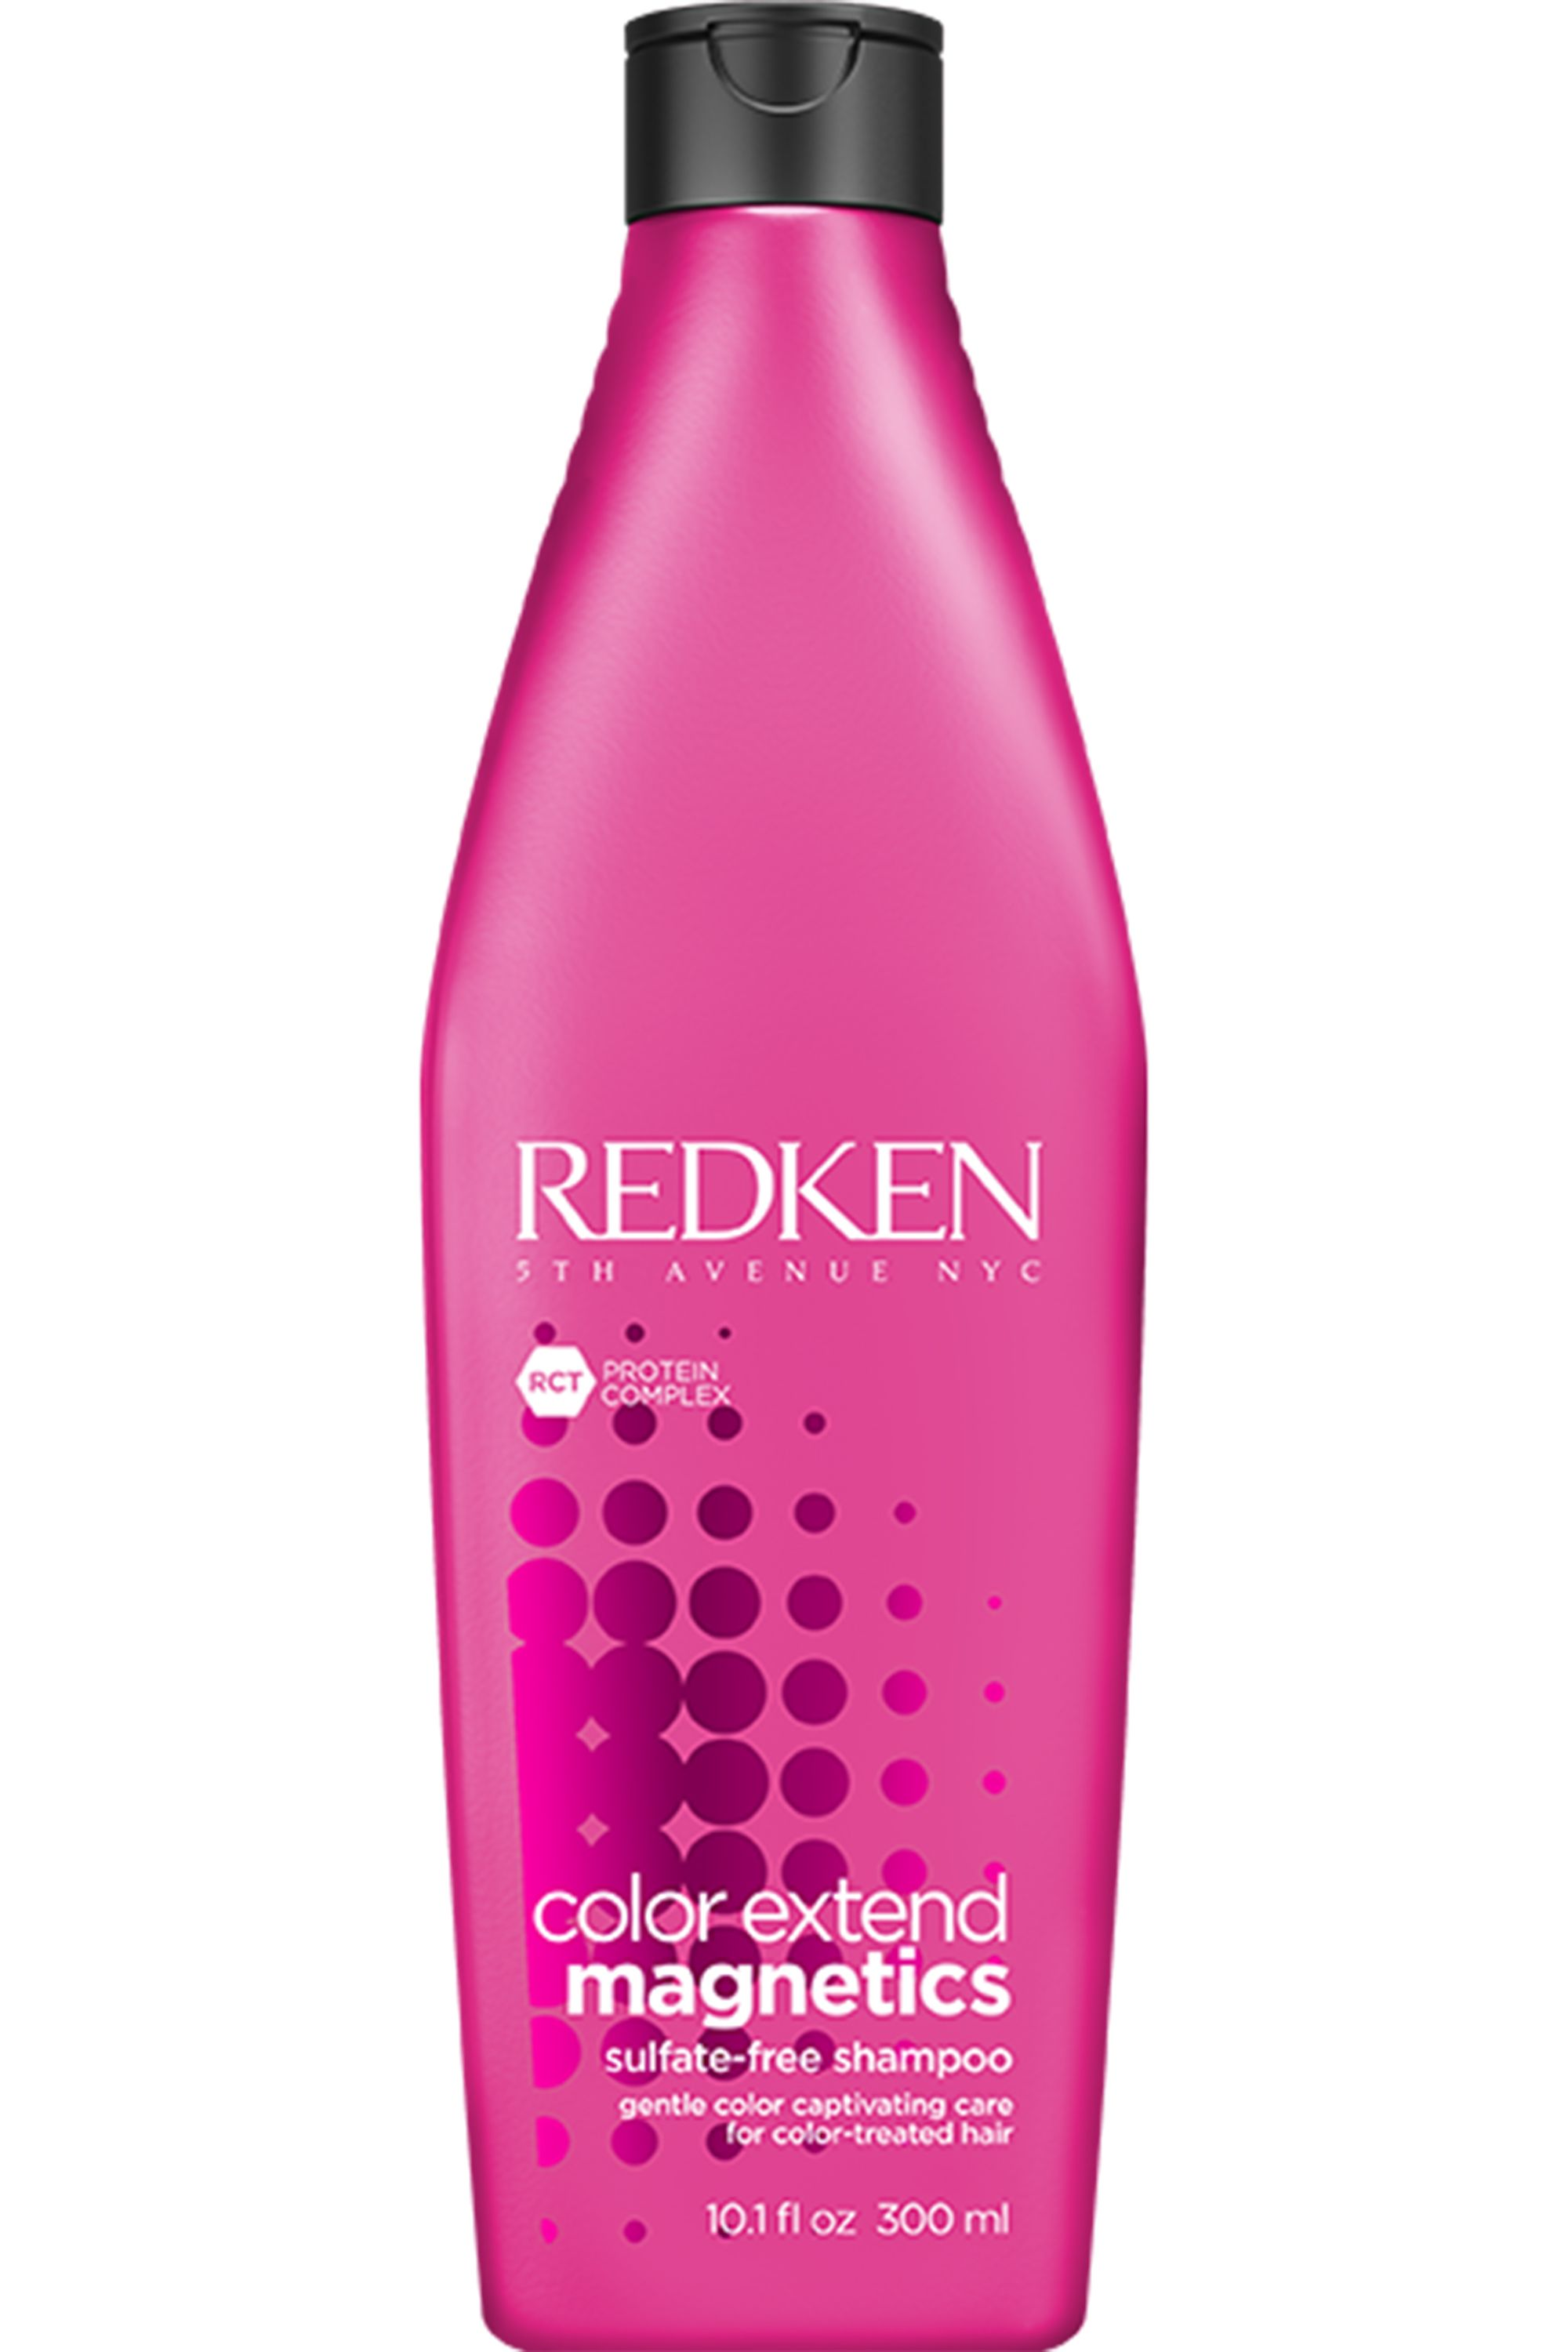 Blissim : Redken - Shampoing Color Extend Magnetics - Shampoing Color Extend Magnetics